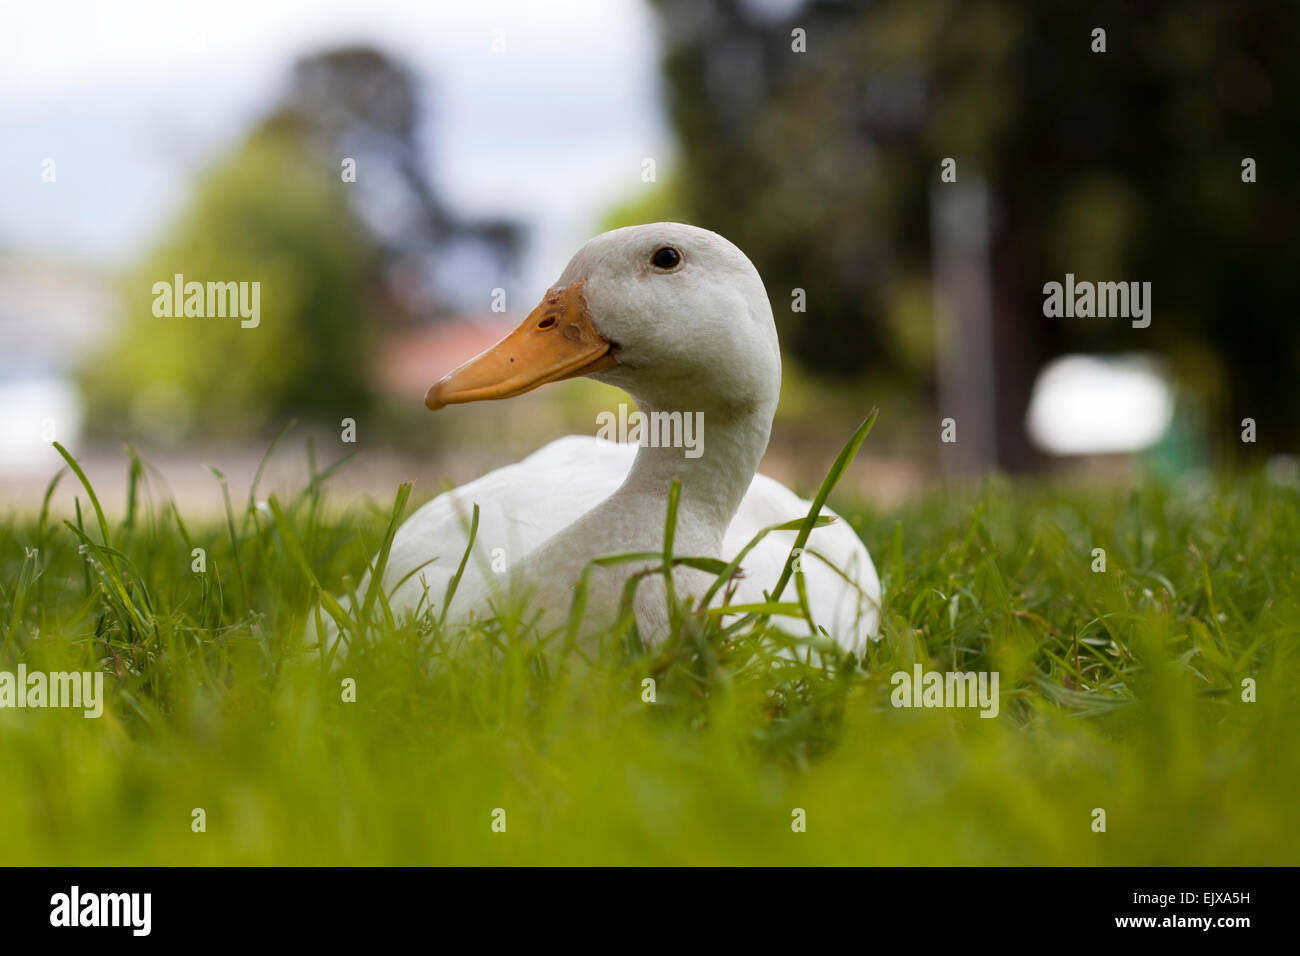 White duck sitting in green grass - Stock Image